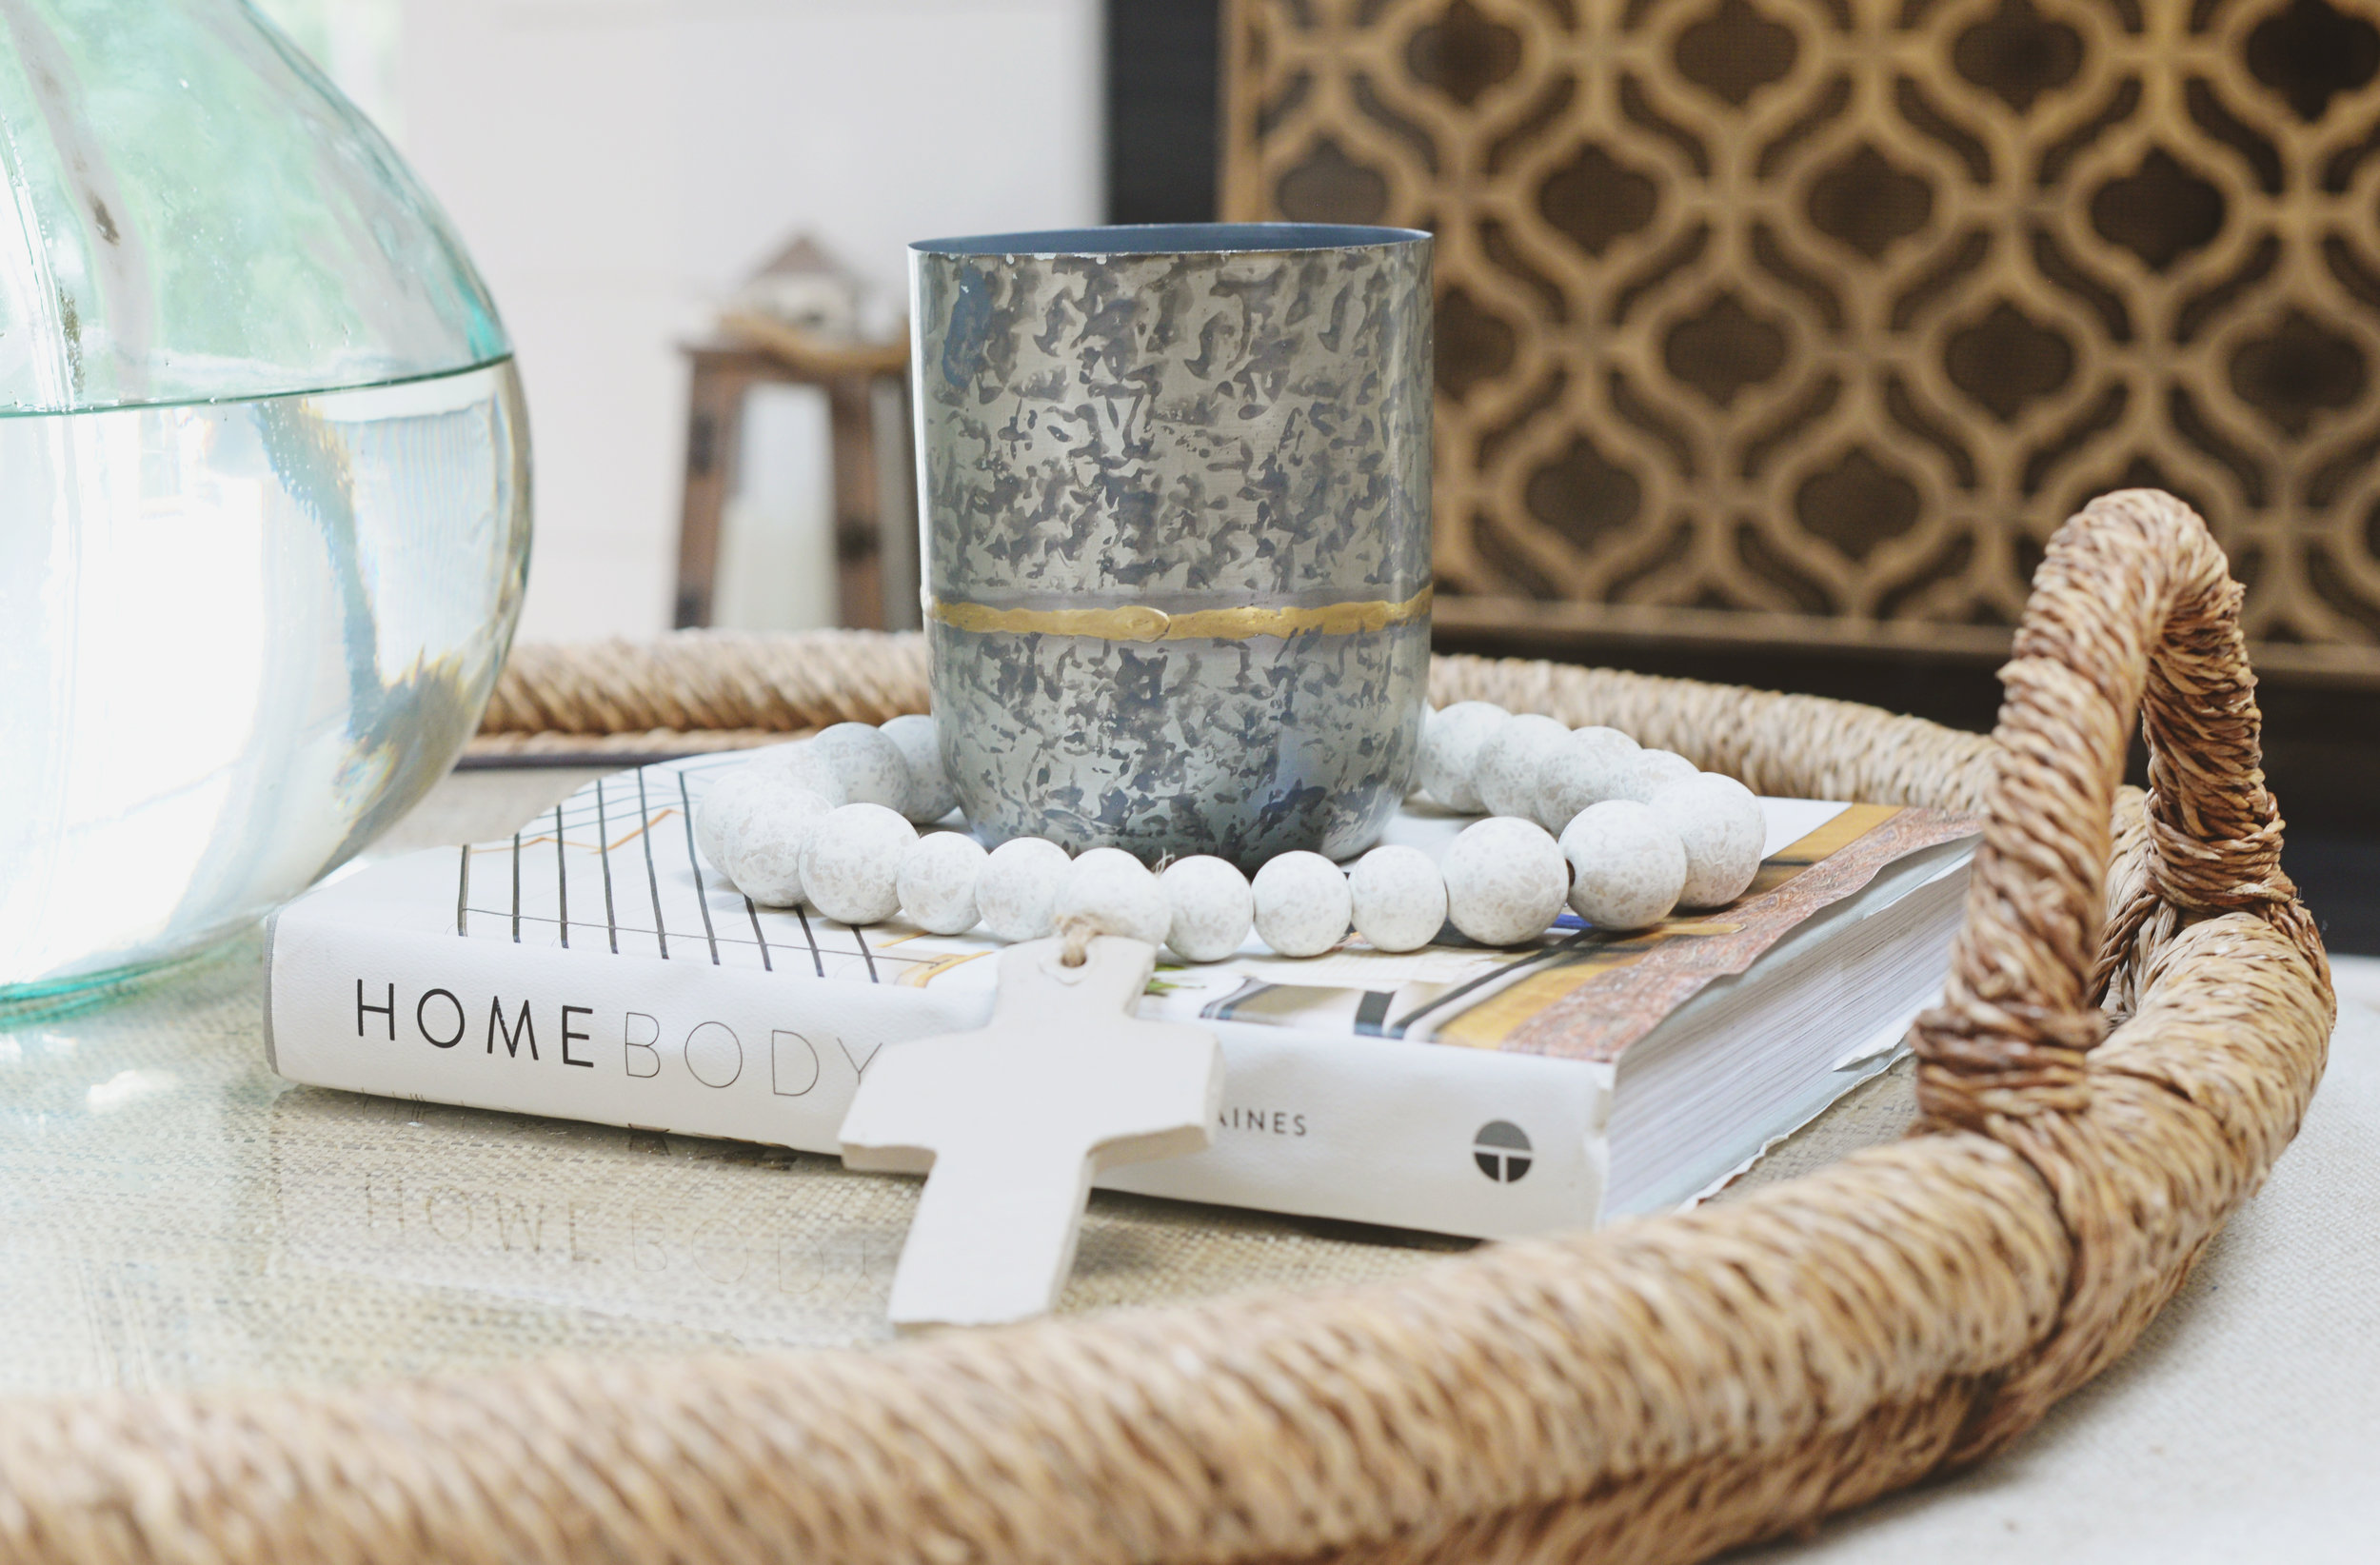 We would love to hear from you! - Do you purchase way too many coffee table books like me? Are you looking to start including more coffee table books in your home? Share your thoughts and/or favorite books in the comments below!